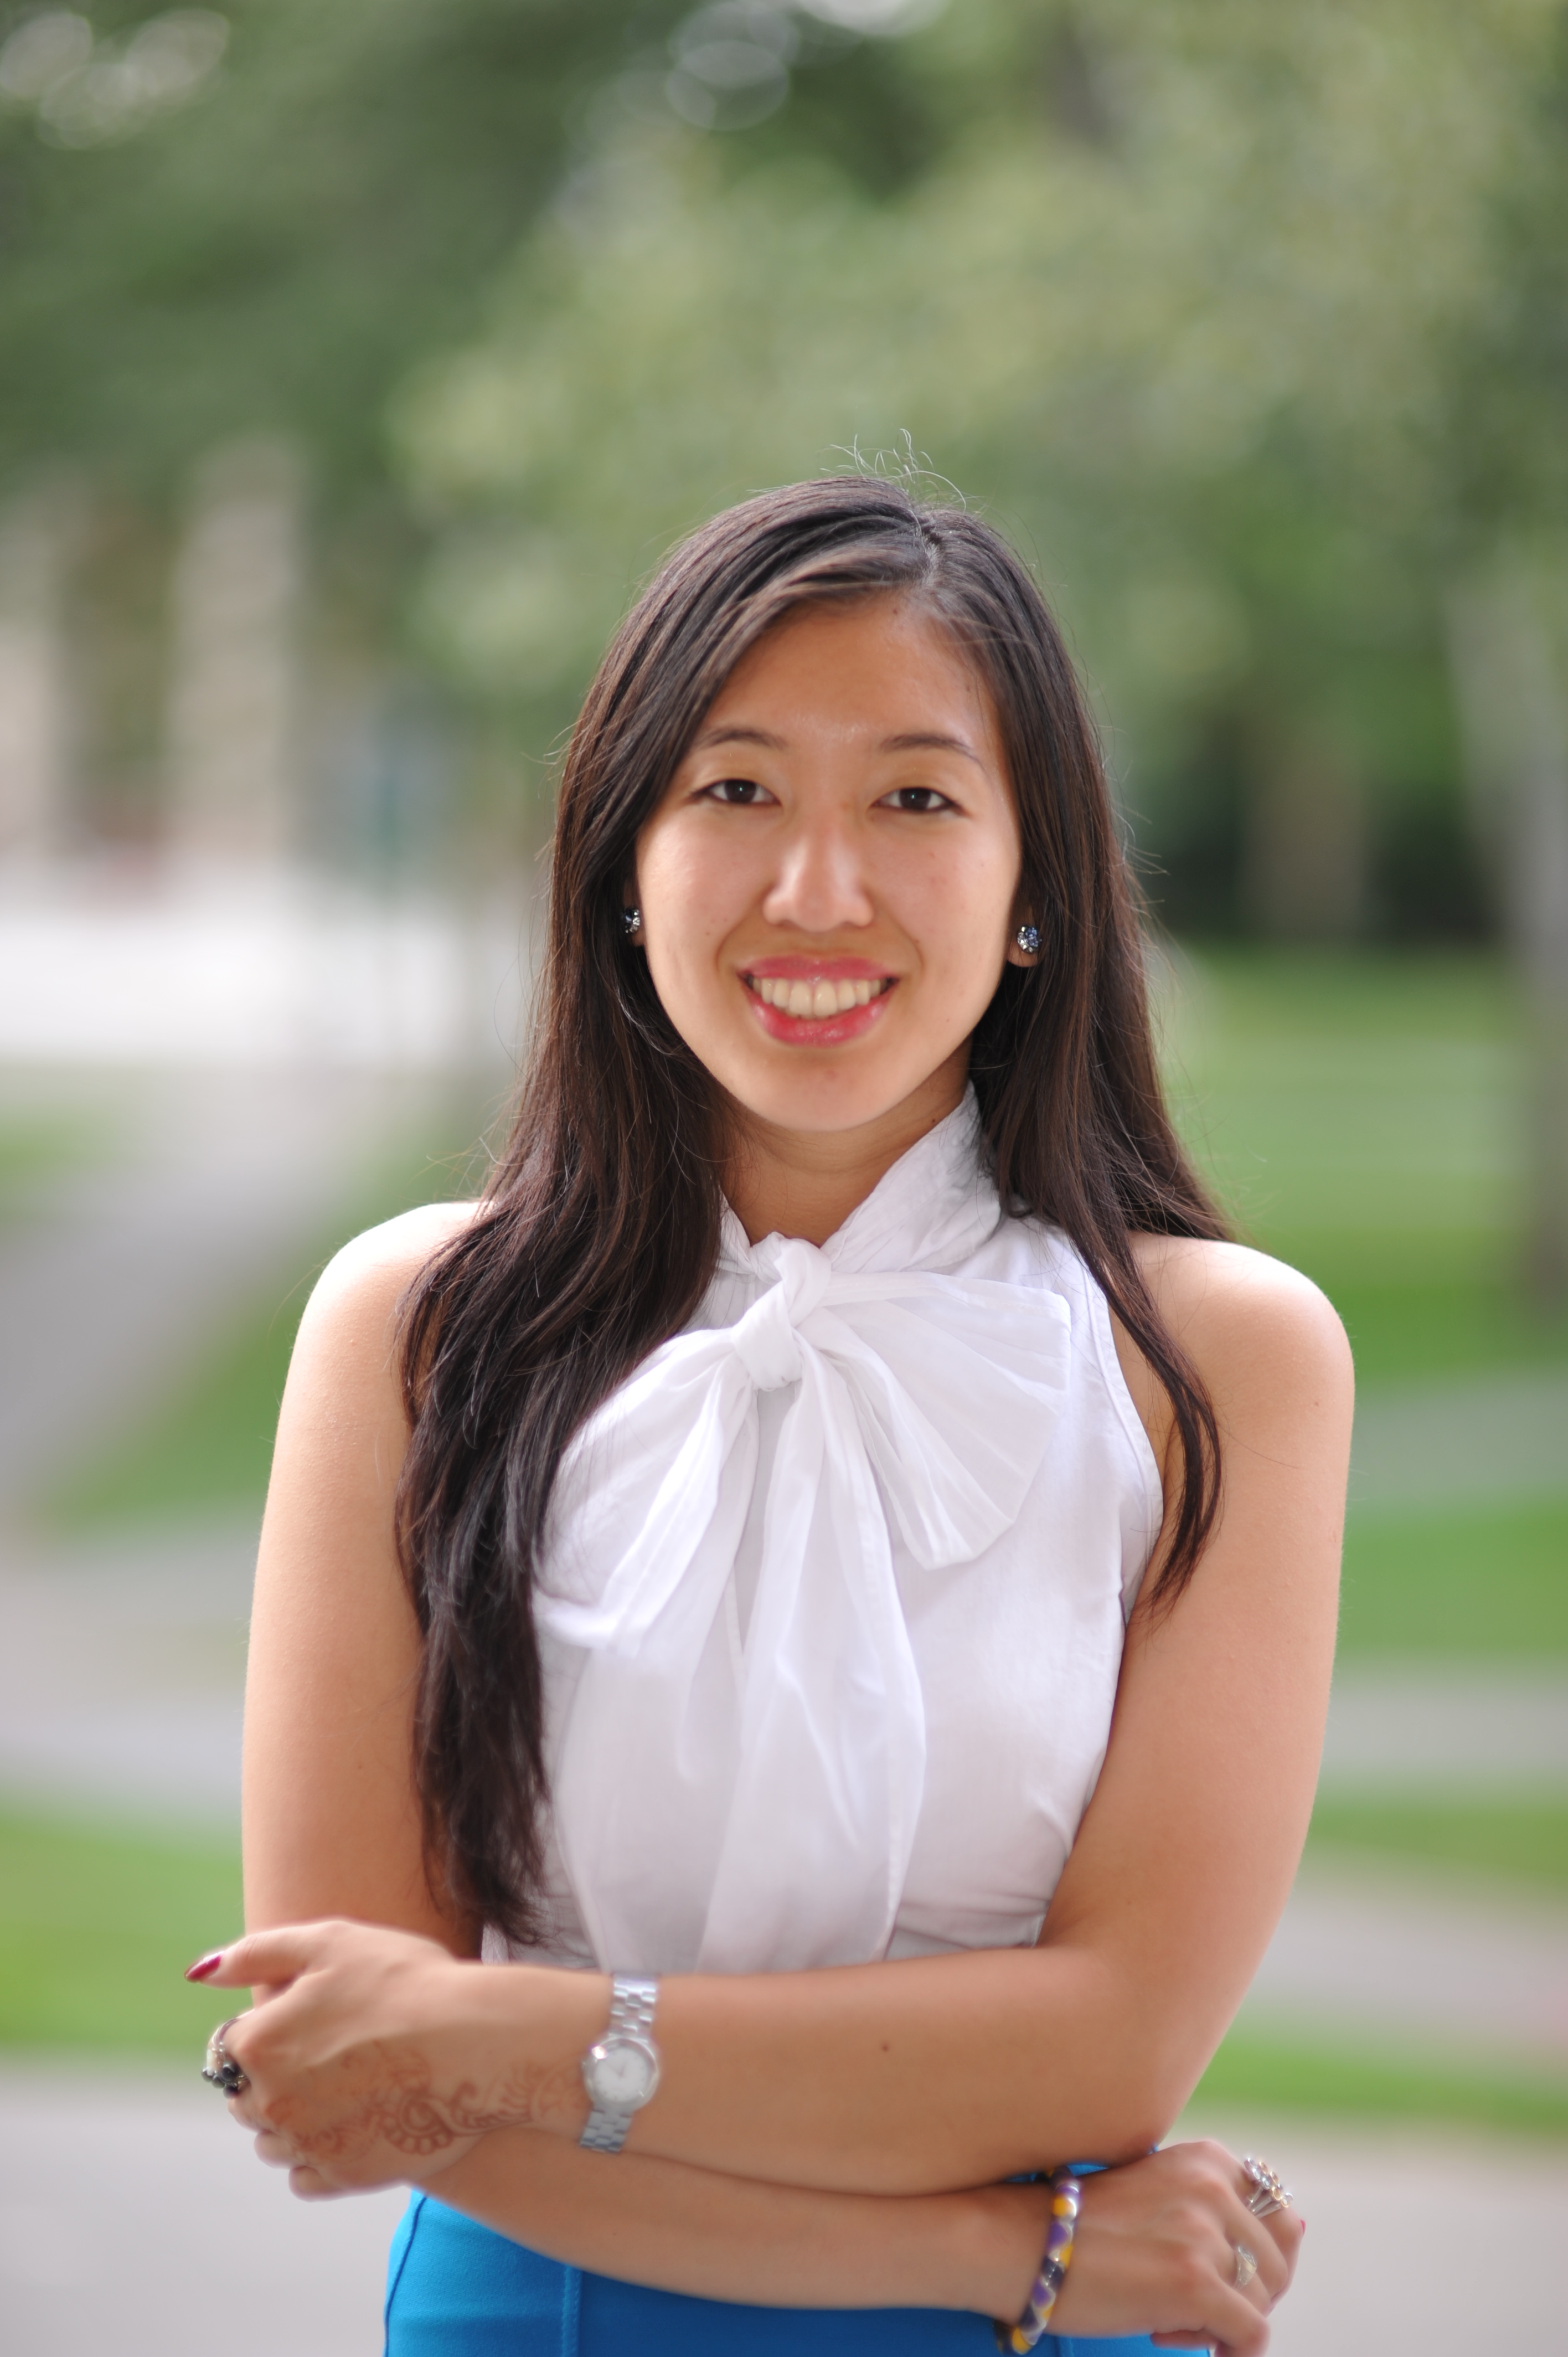 Young Asian Teen Girl Claim She The Most Beautiful With: 2013 Young Nonprofit Professional Award Finalists